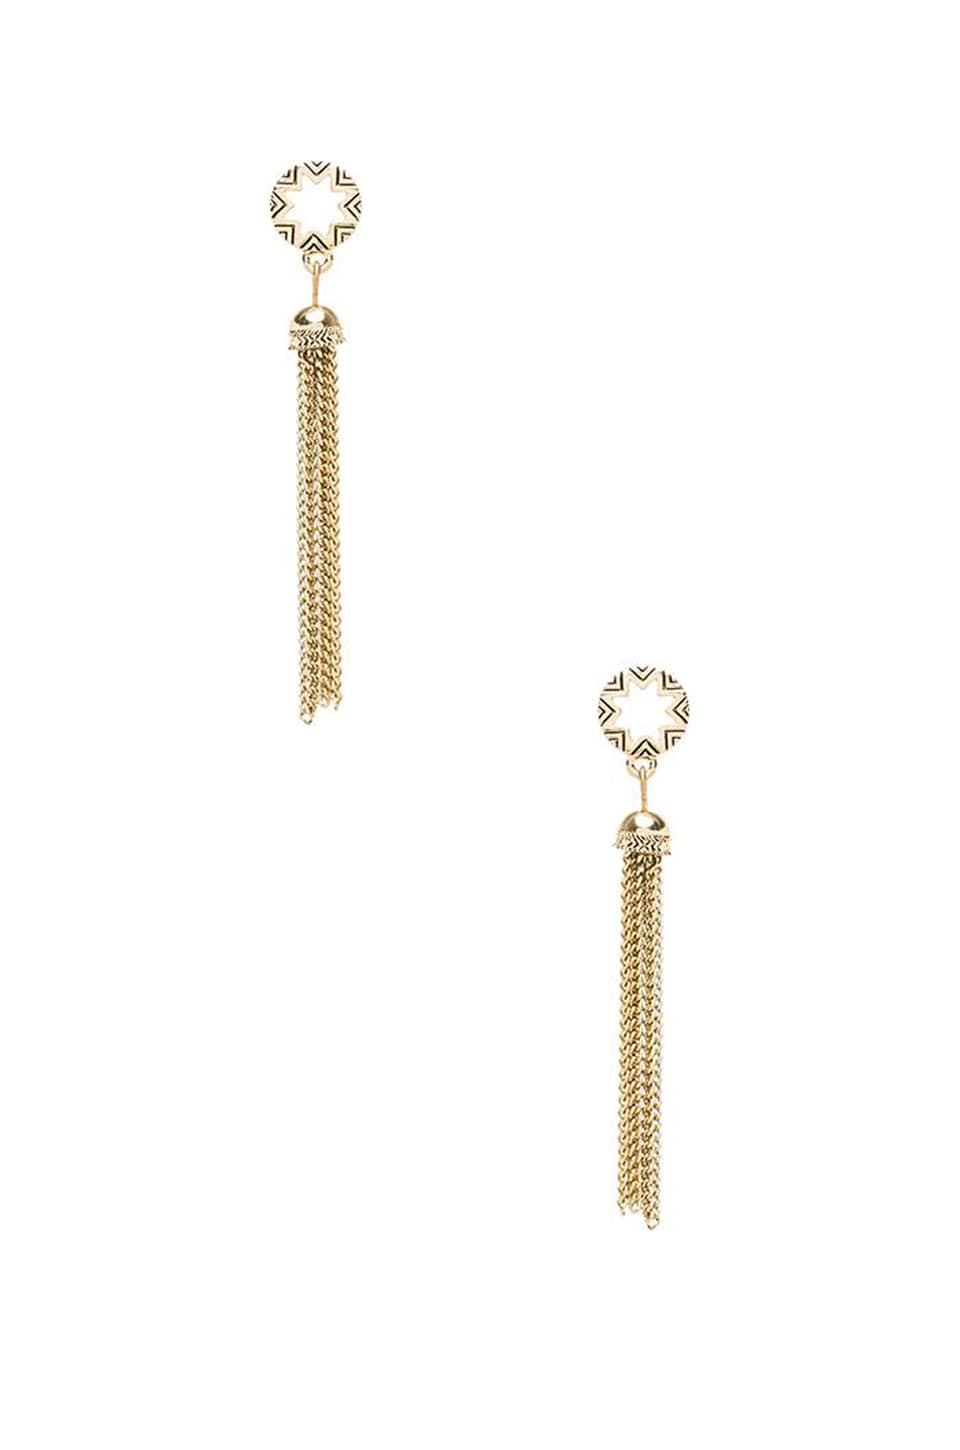 House of Harlow 1960 House of Harlow Sunburst Tassel Earrings in White